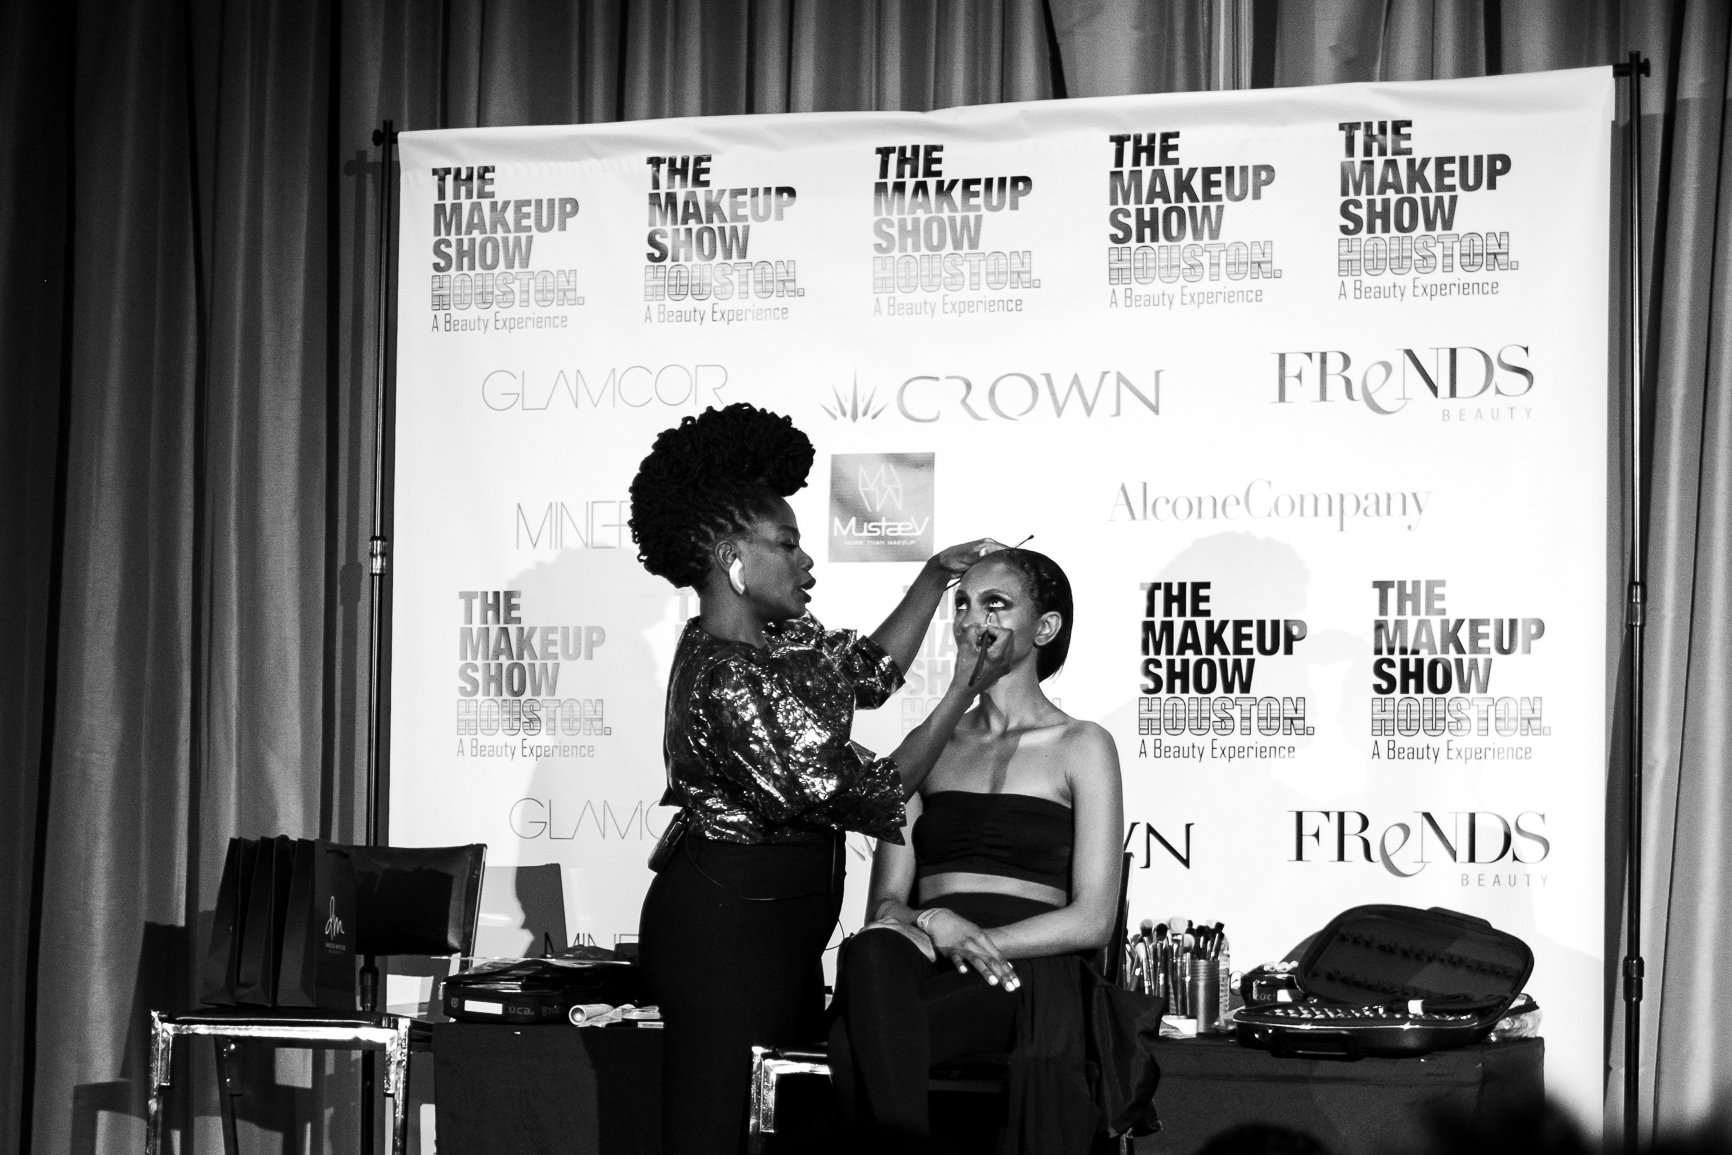 Danessa Myricks Keynote Presentation at The Makeup Show, Houston, TX